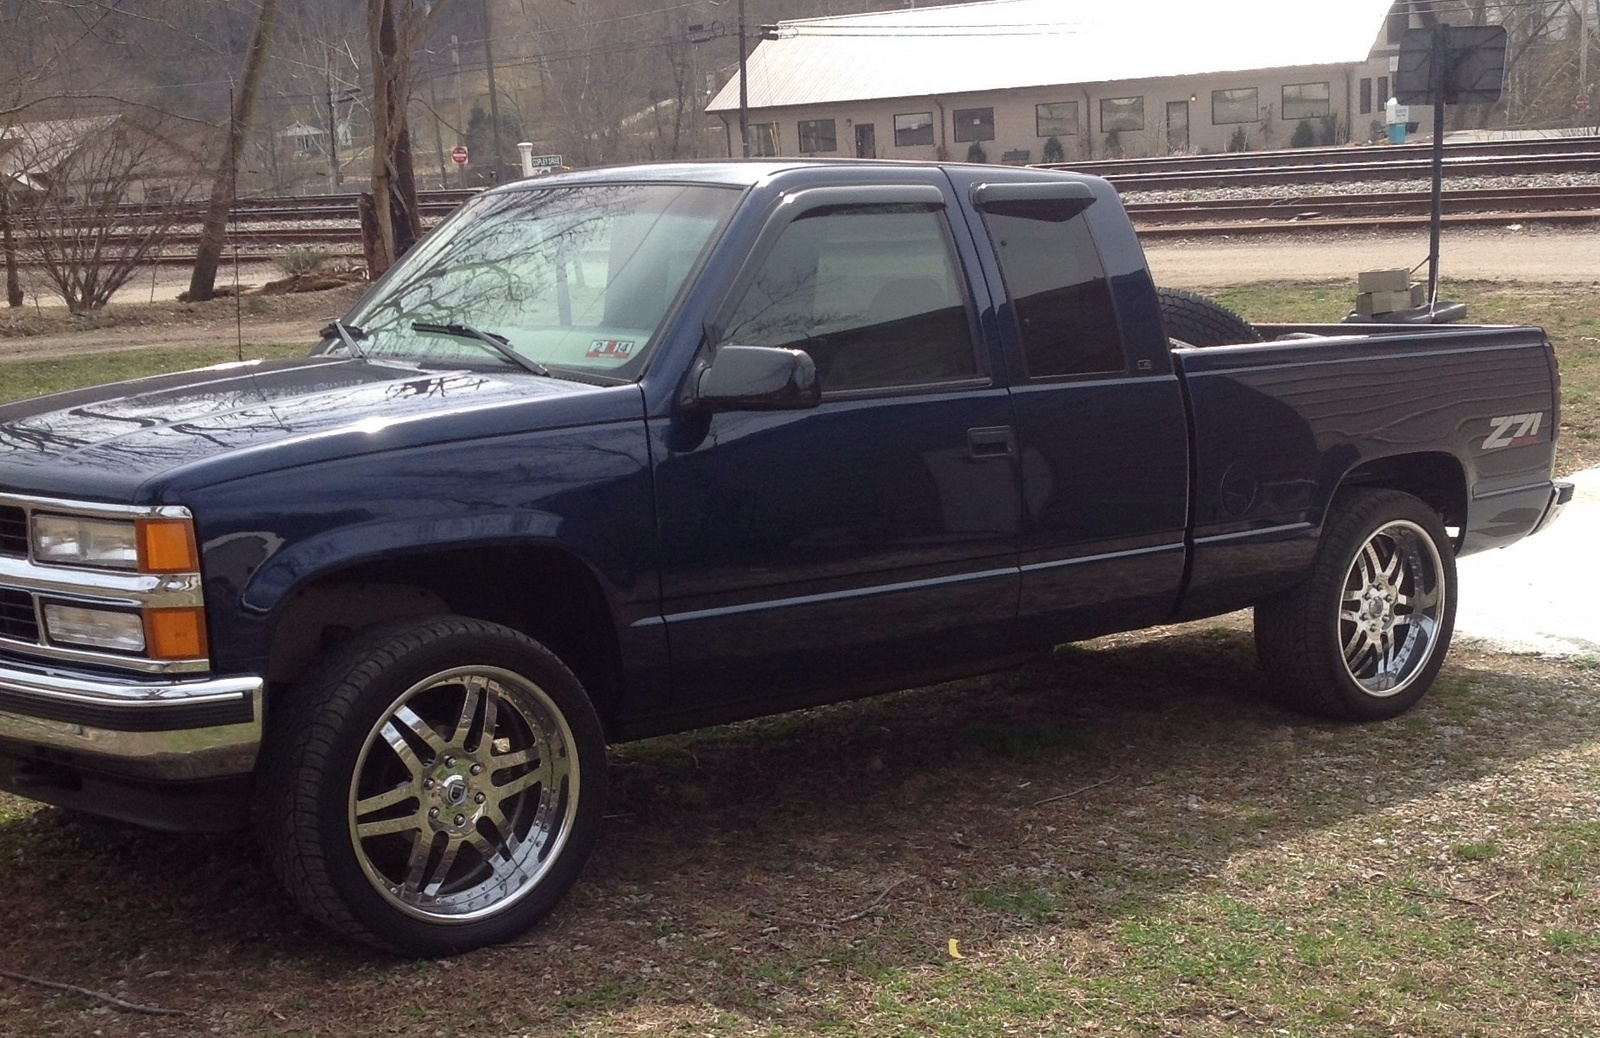 High Quality I Have A 1999 Chevy Silverado Z71 K 1500 4 By 4 And It Is The 98 Body  Style. My ? Is How Many Were Made?